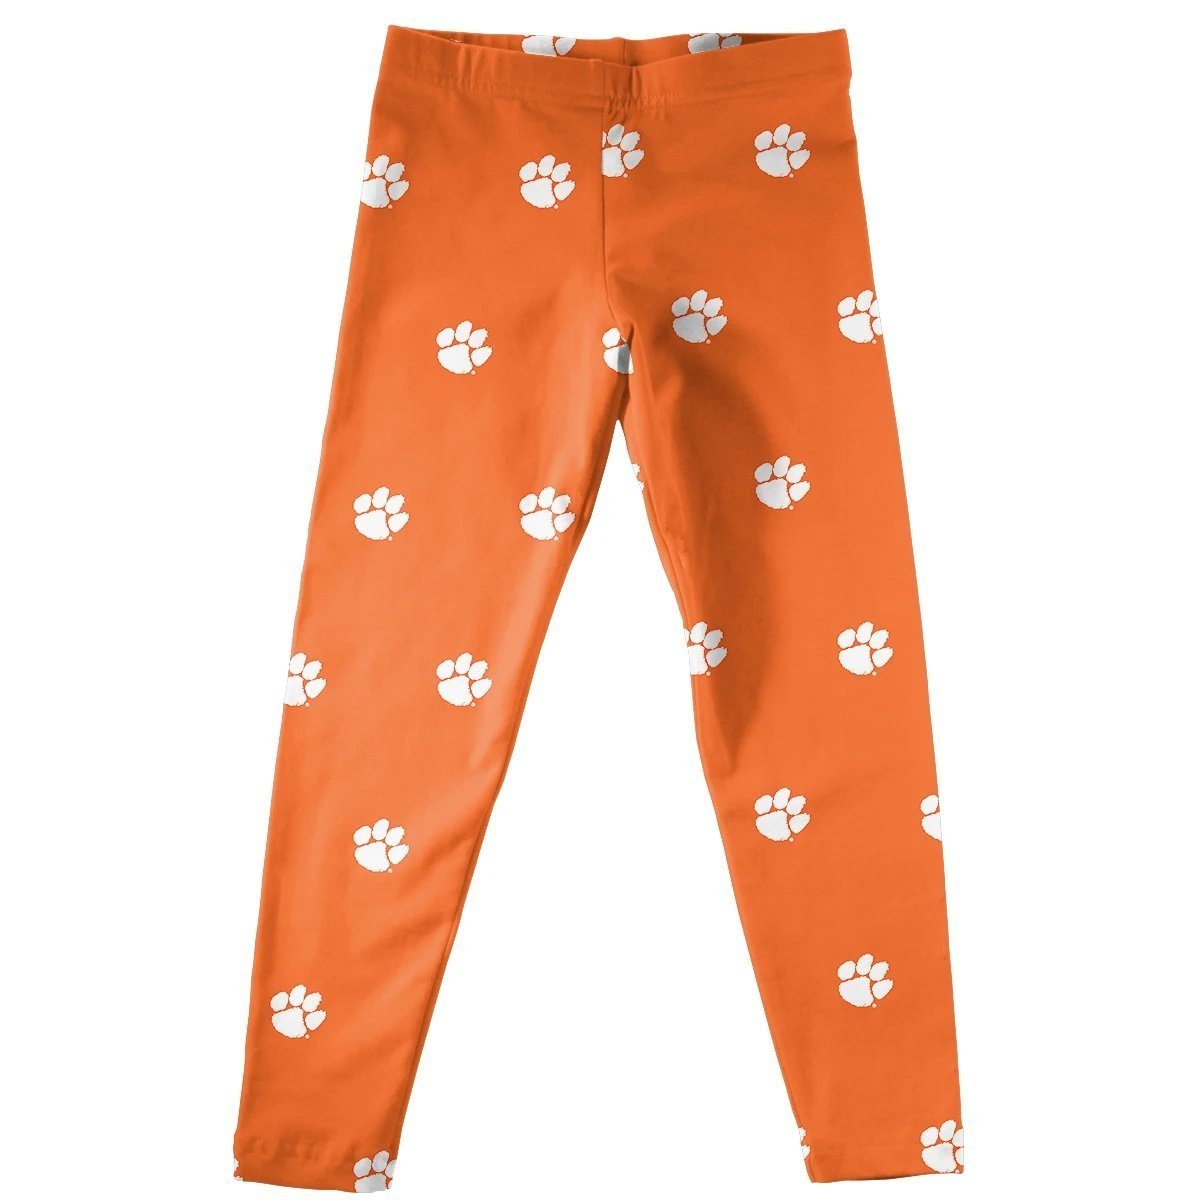 Clemson Print Orange Leggings - Mr. Knickerbocker